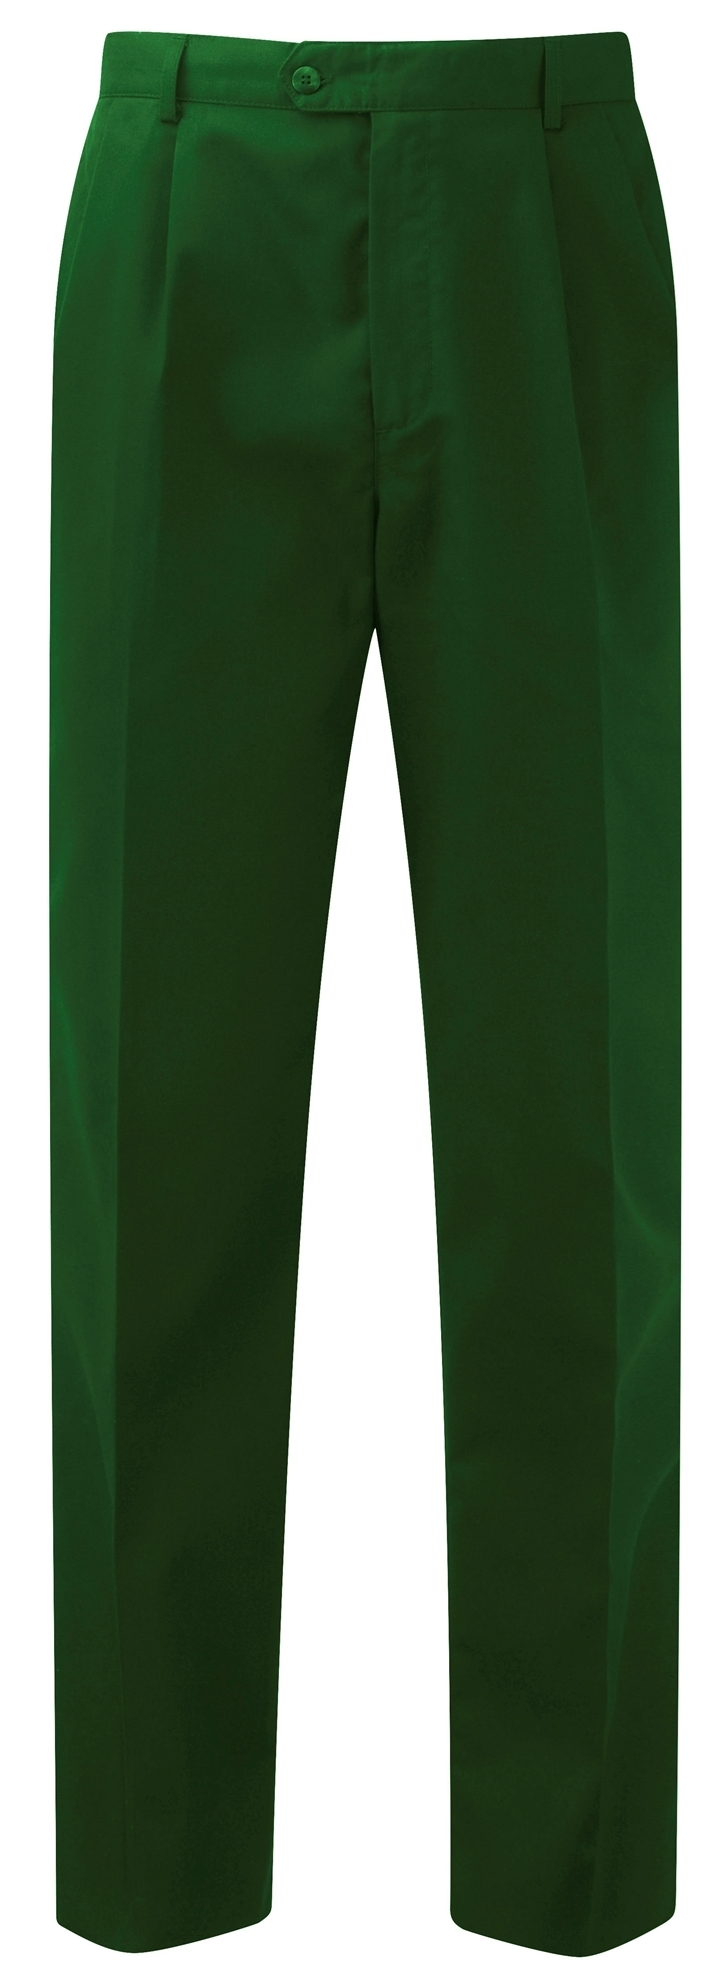 Picture of Male Trousers - Bottle Green